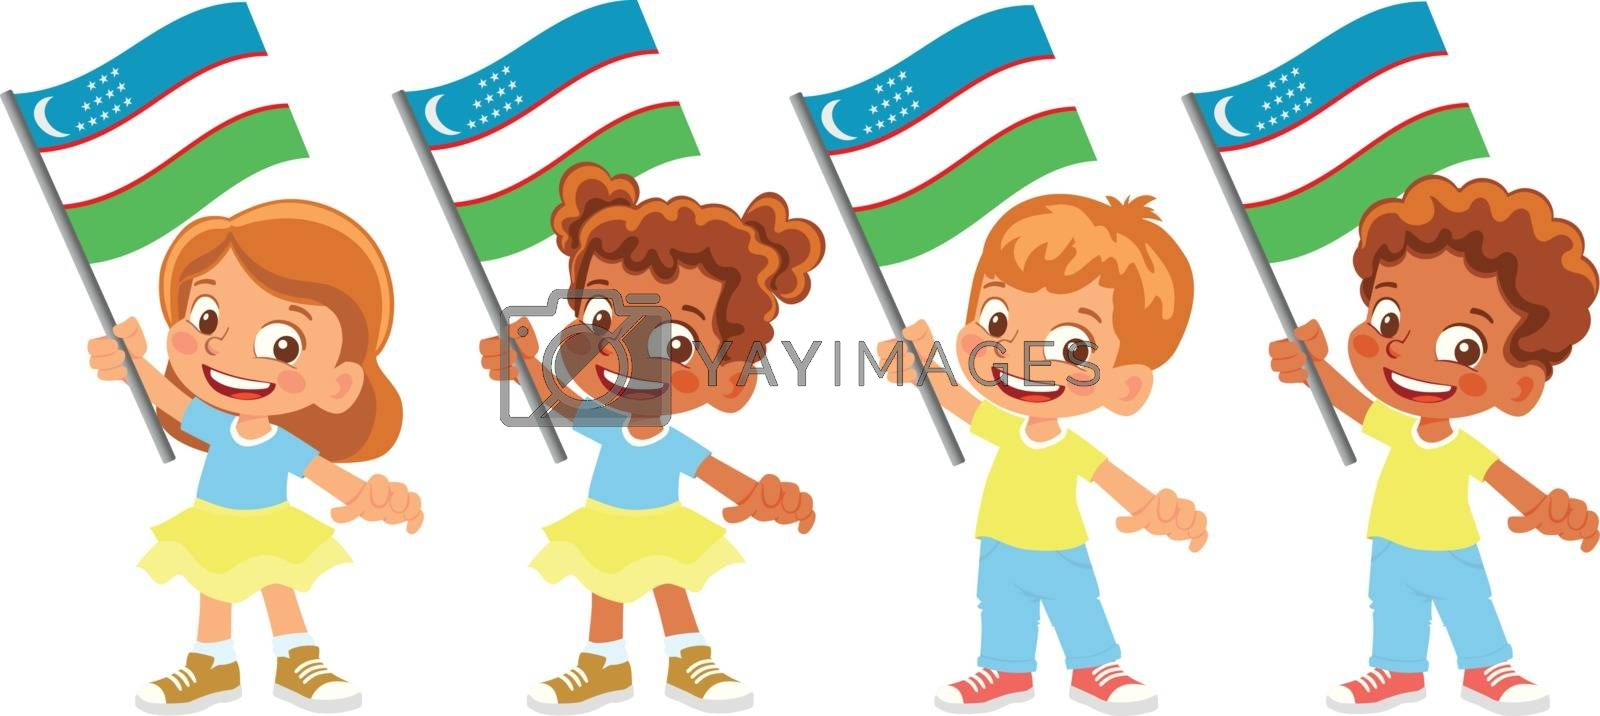 Uzbekistan flag in hand set by Visual-Content